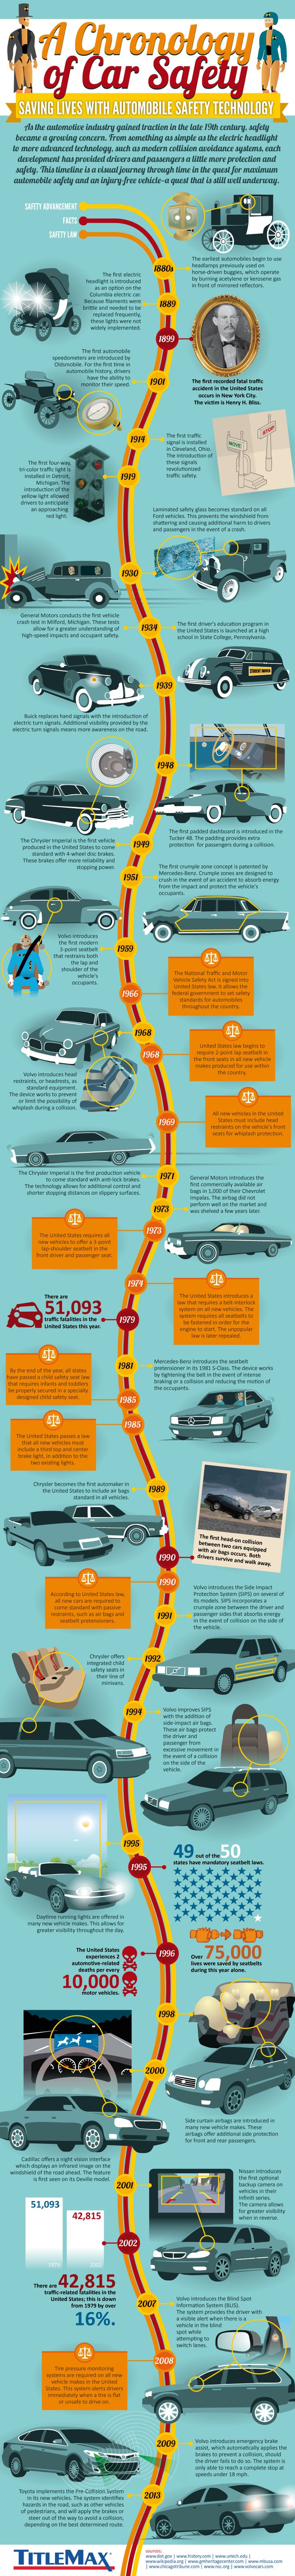 The future of cars. Car safety #NoCrashCars